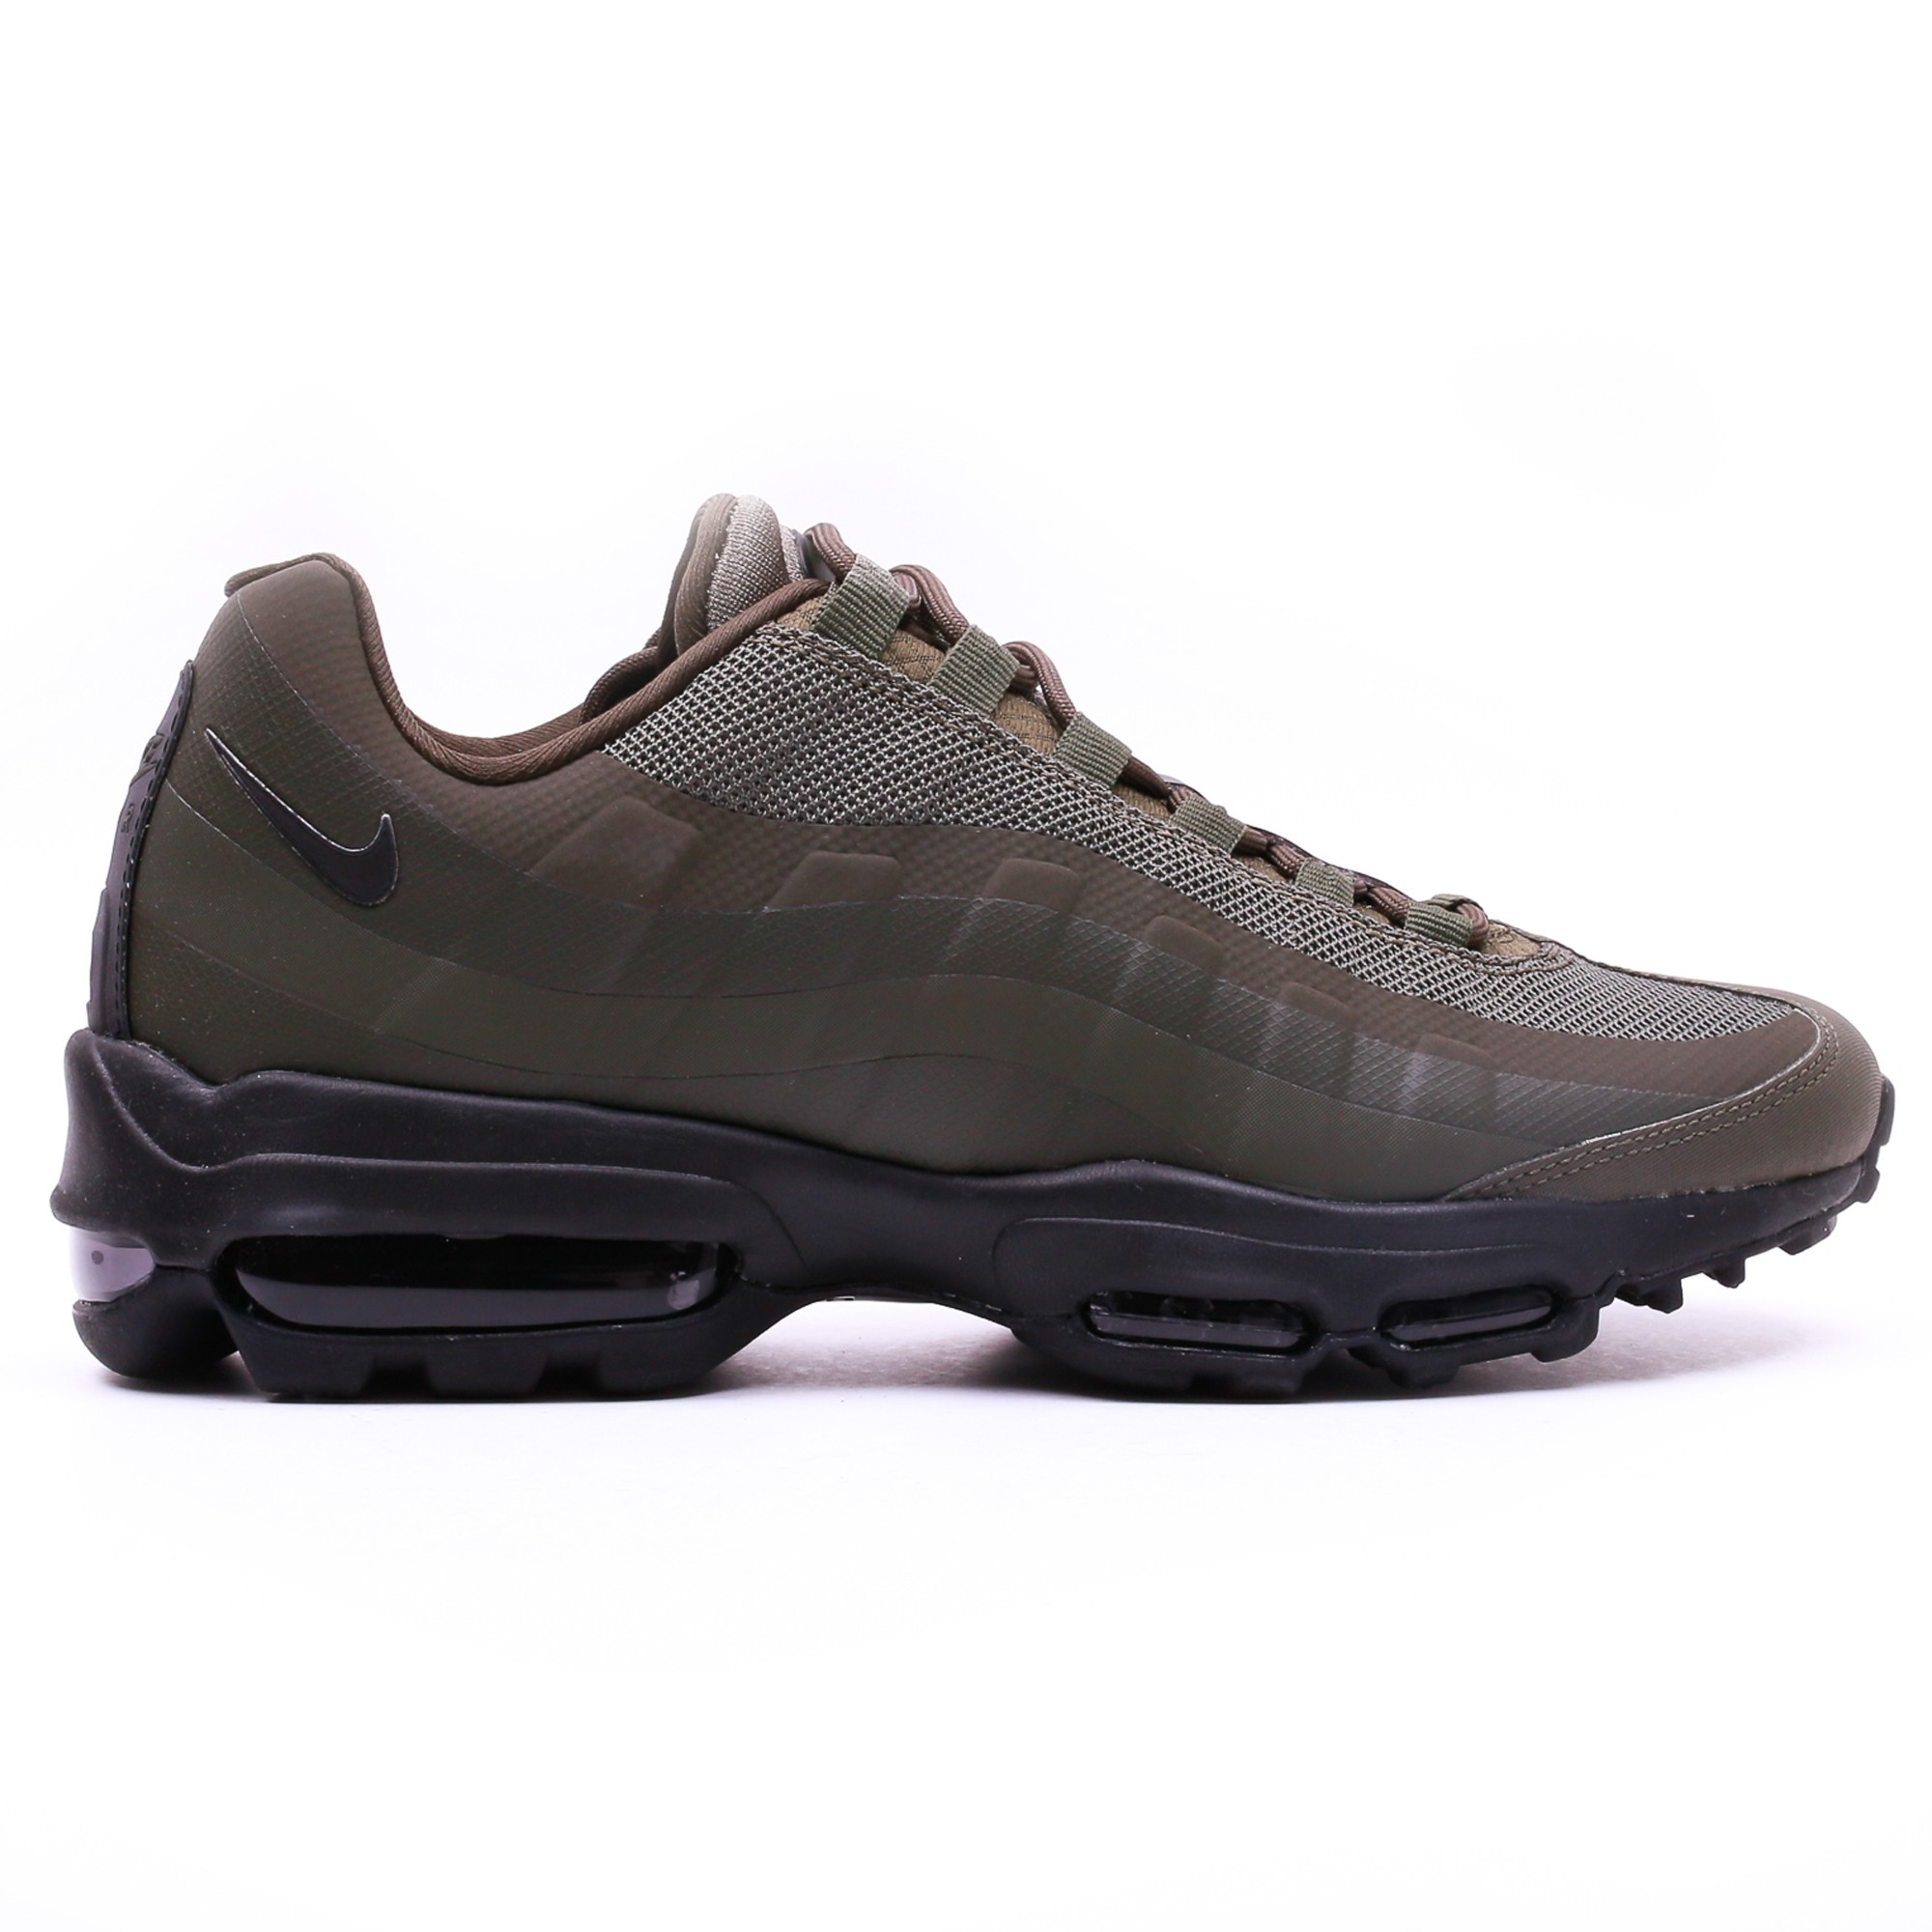 nike men 39 s air max 95 ultra essential shoe khaki slash store. Black Bedroom Furniture Sets. Home Design Ideas